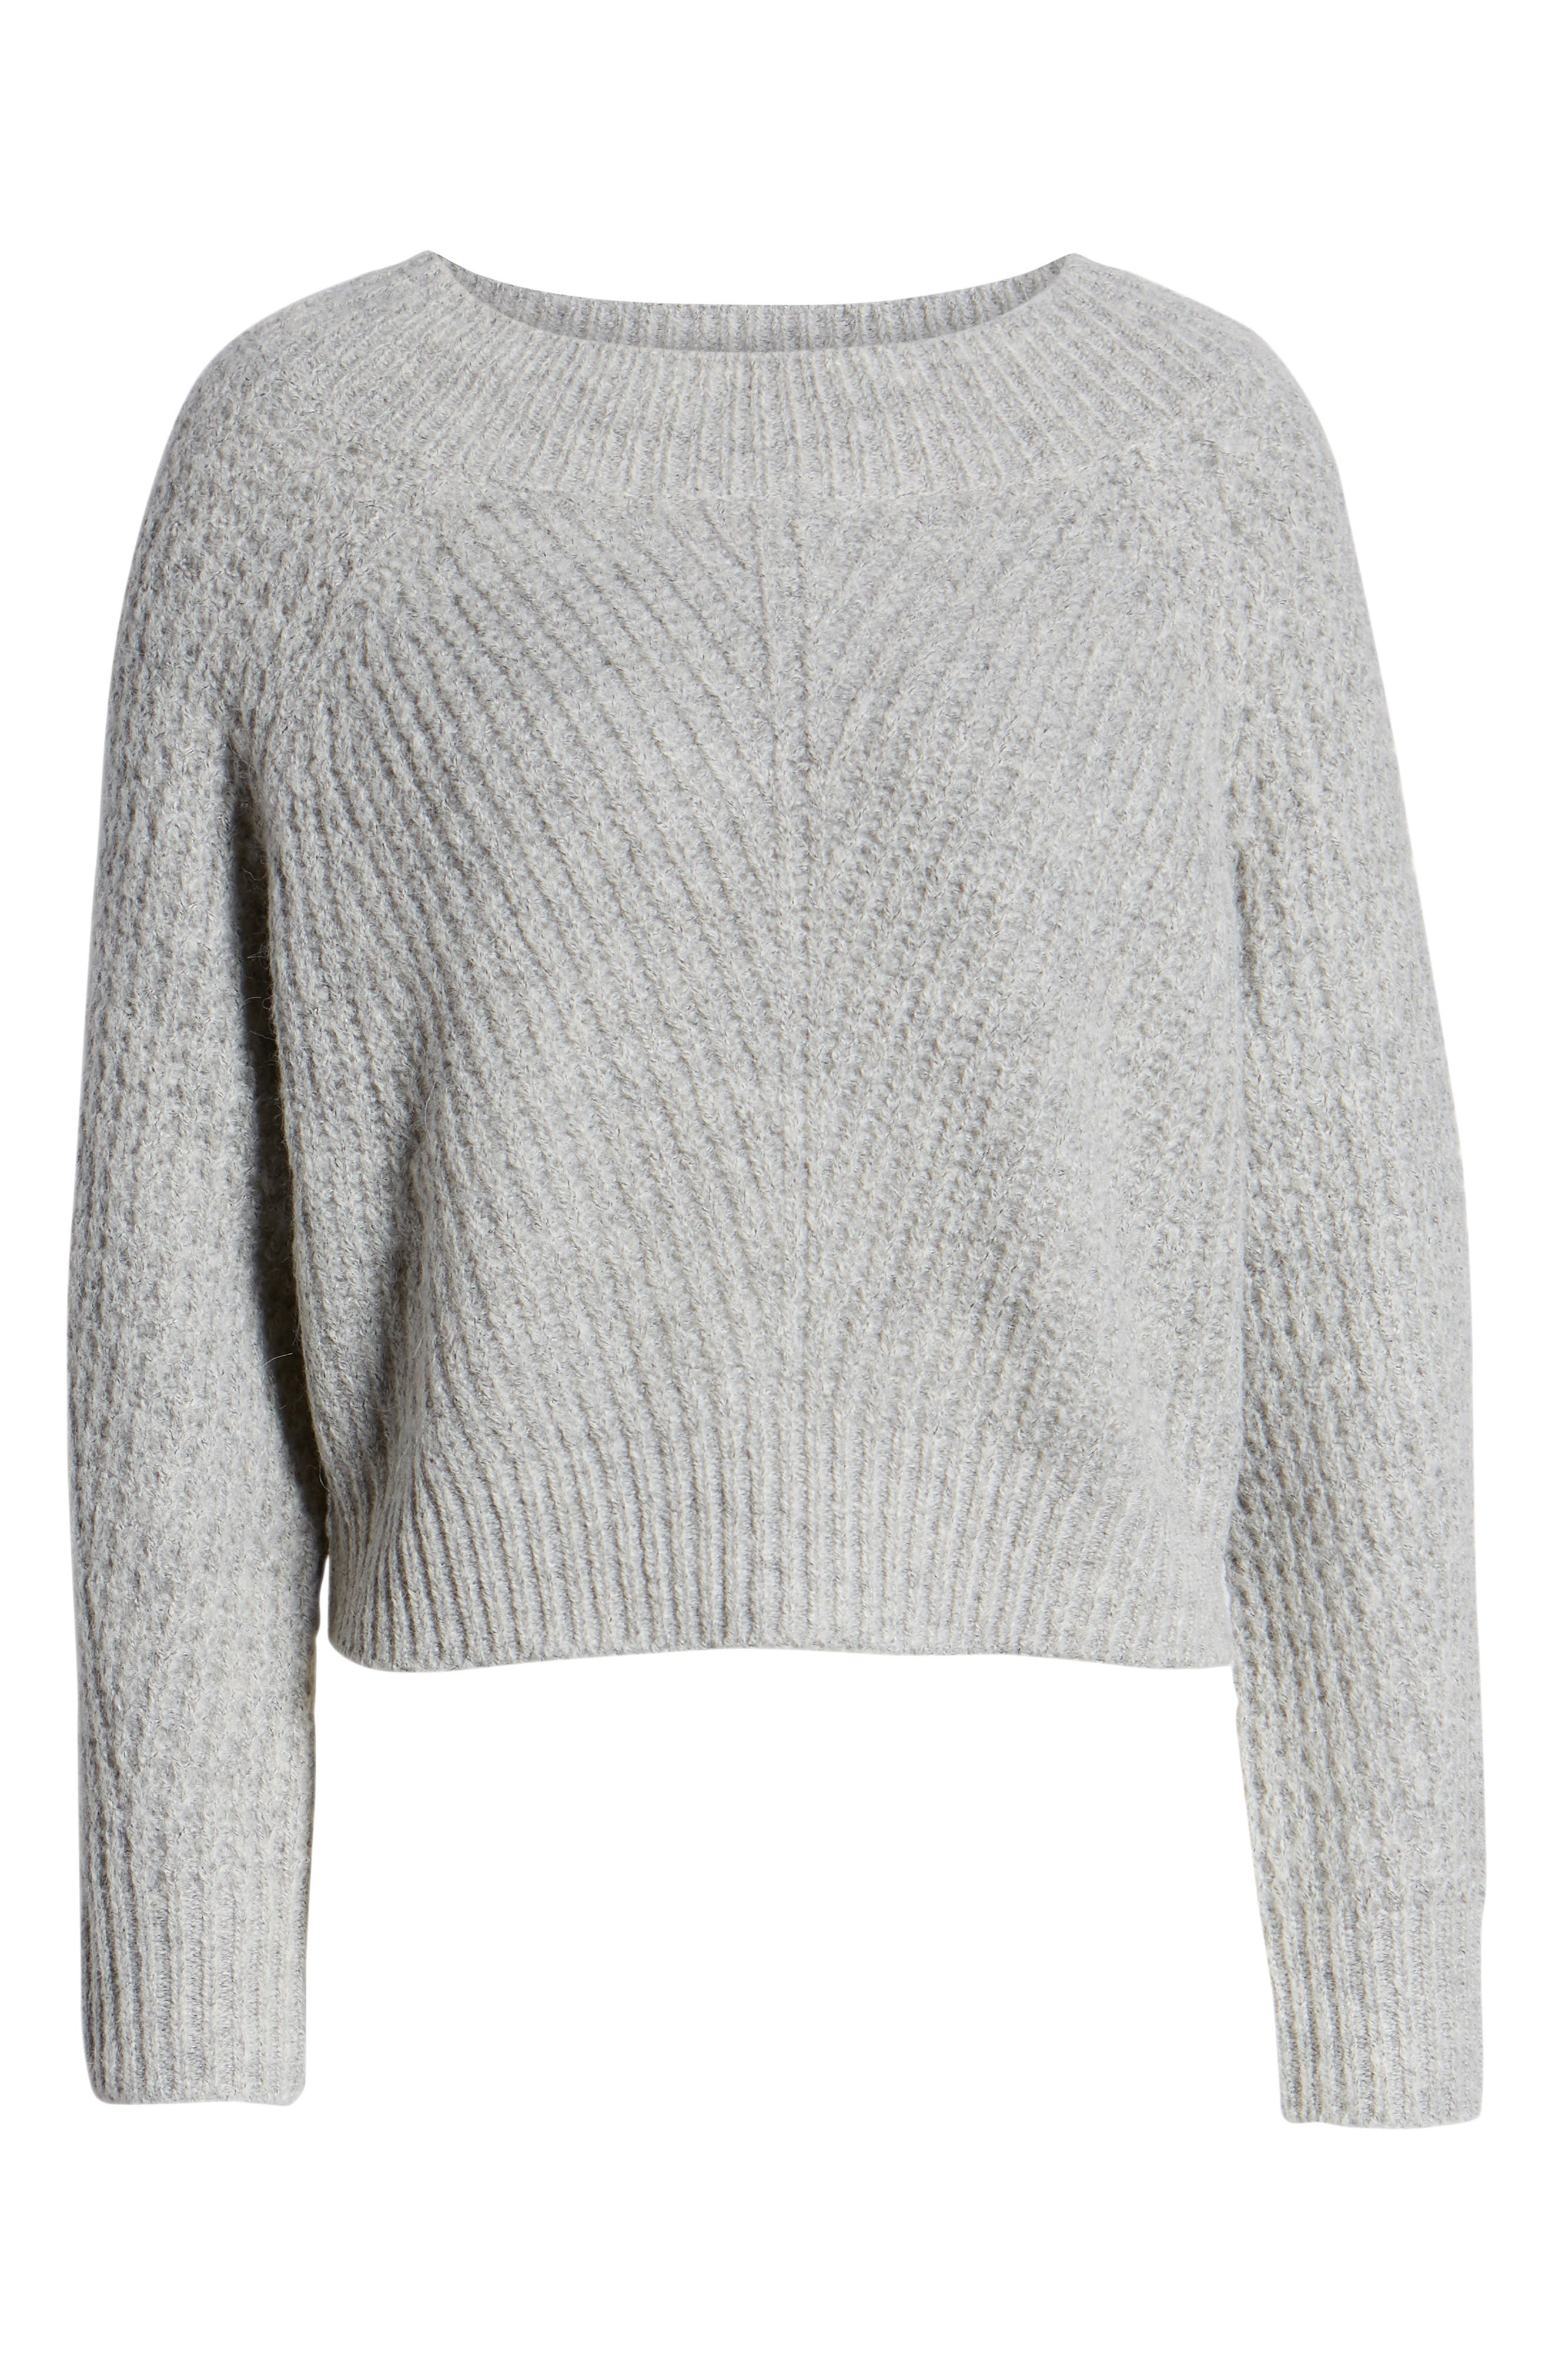 Chunky Crewneck Pullover Sweater,                             Alternate thumbnail 6, color,                             GREY PEARL HEATHER